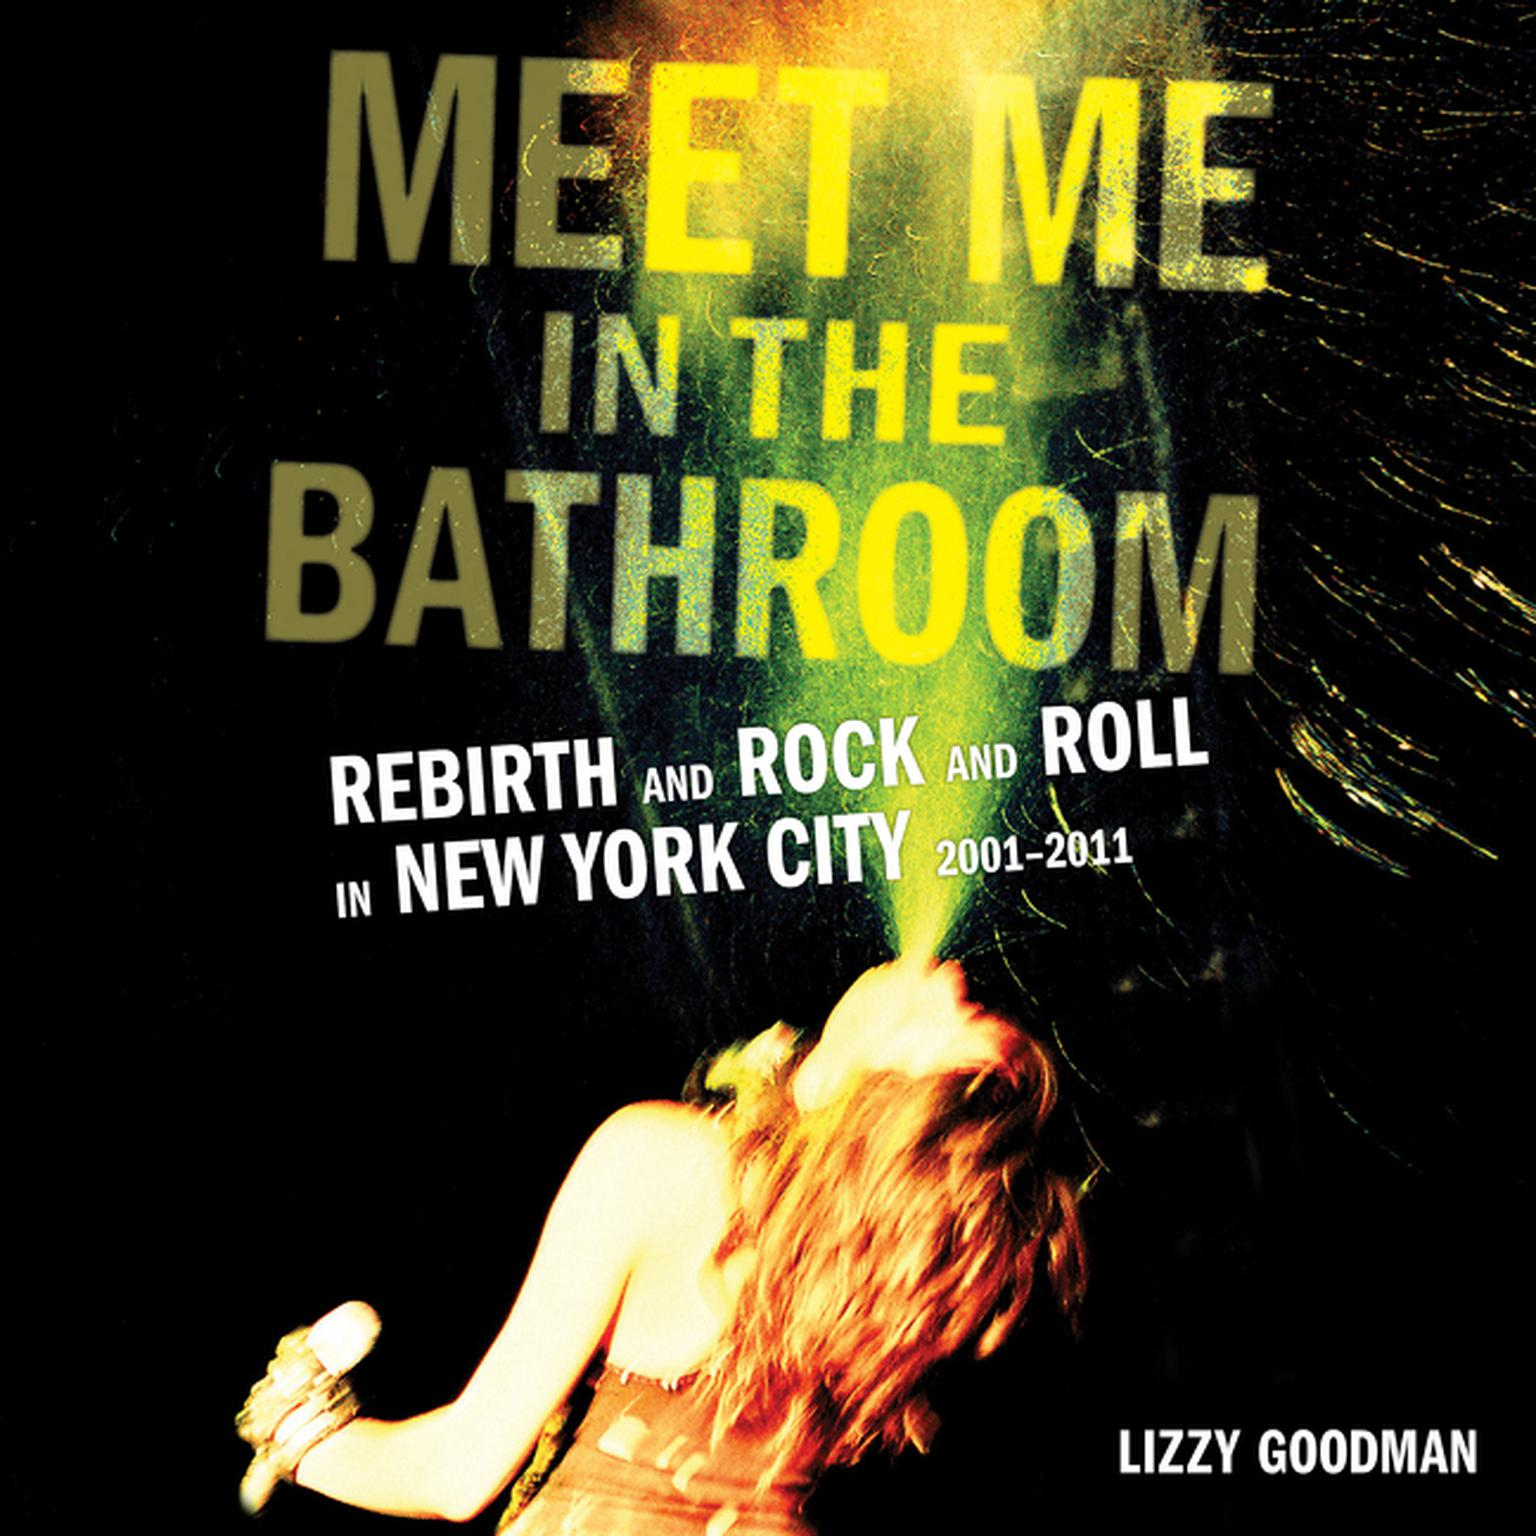 Printable Meet Me in the Bathroom: Rebirth and Rock and Roll in New York City 2001-2011 Audiobook Cover Art